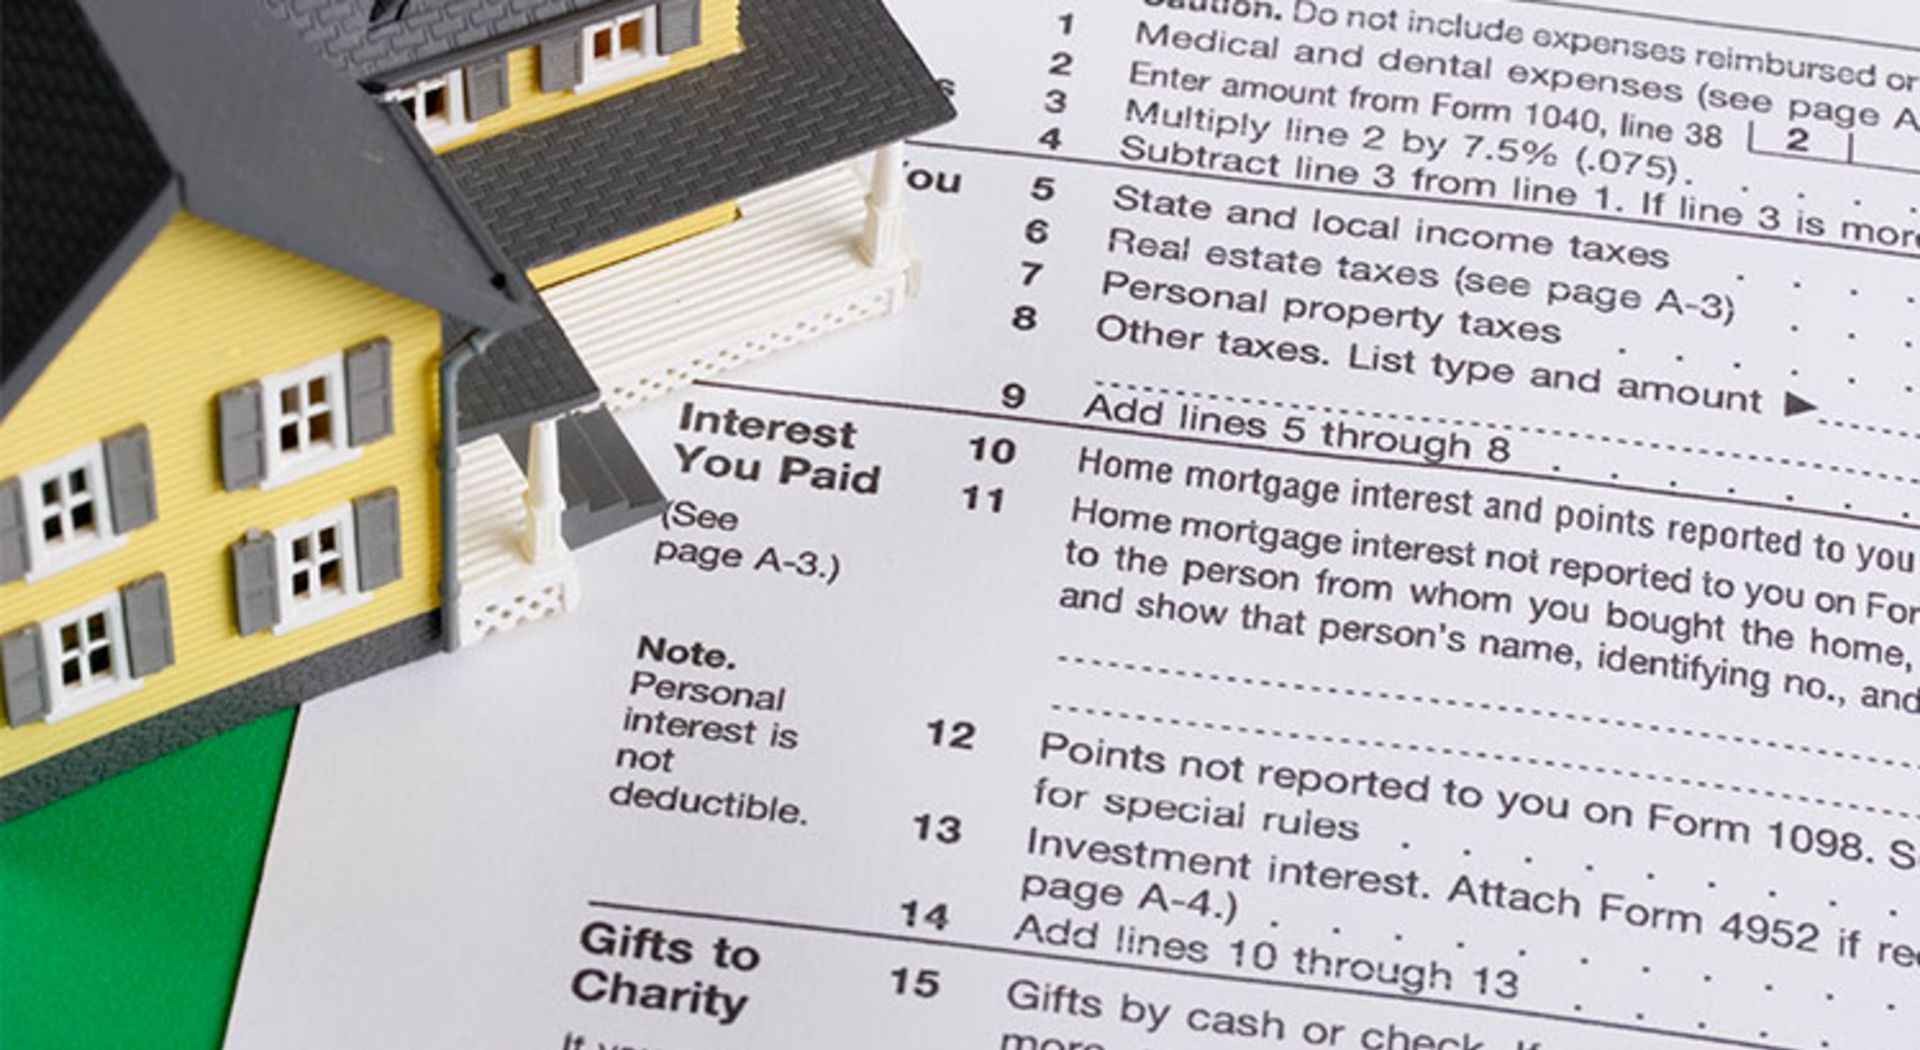 What Impact Will The New Tax Code Have On Home Values?